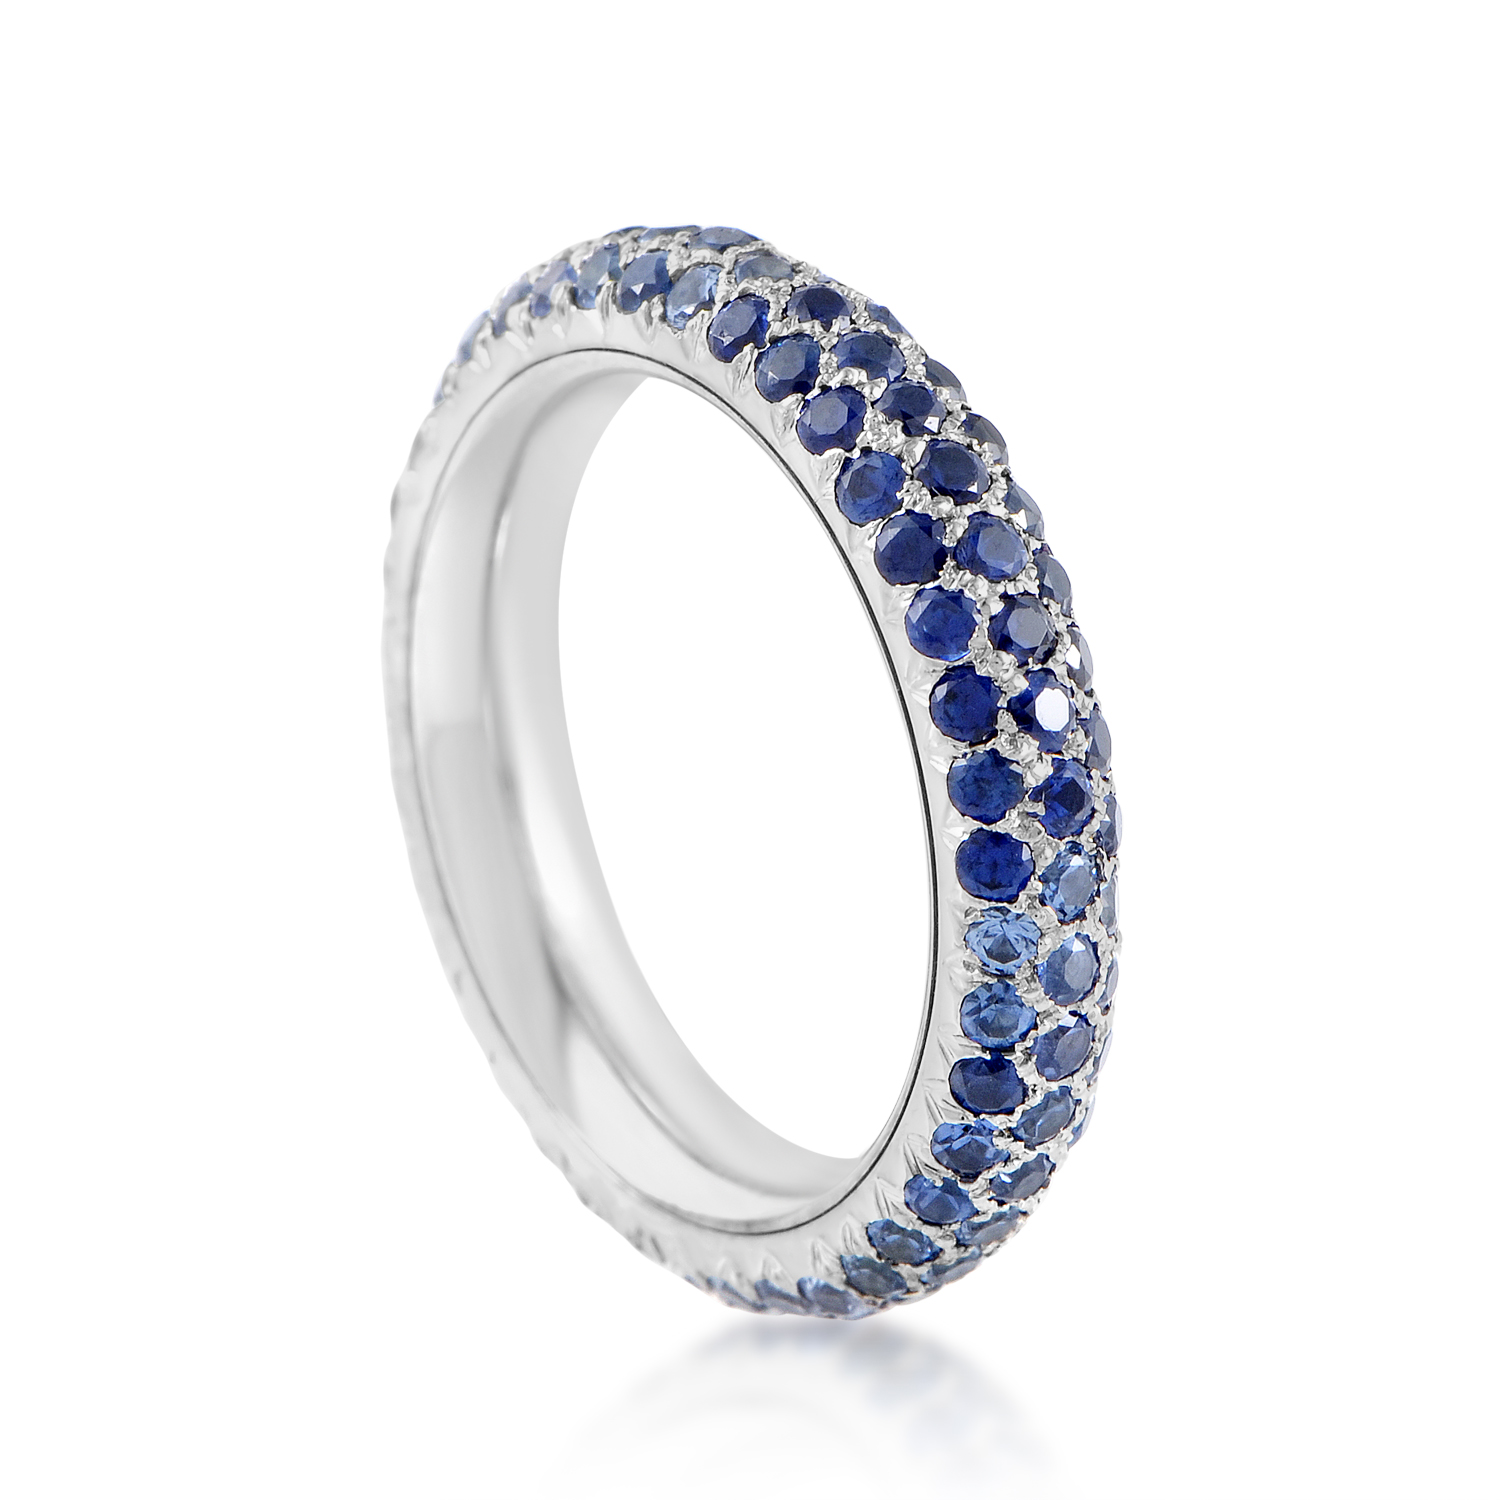 Chanel 18K White Gold Full Diamond & Sapphire Pave Band Ring